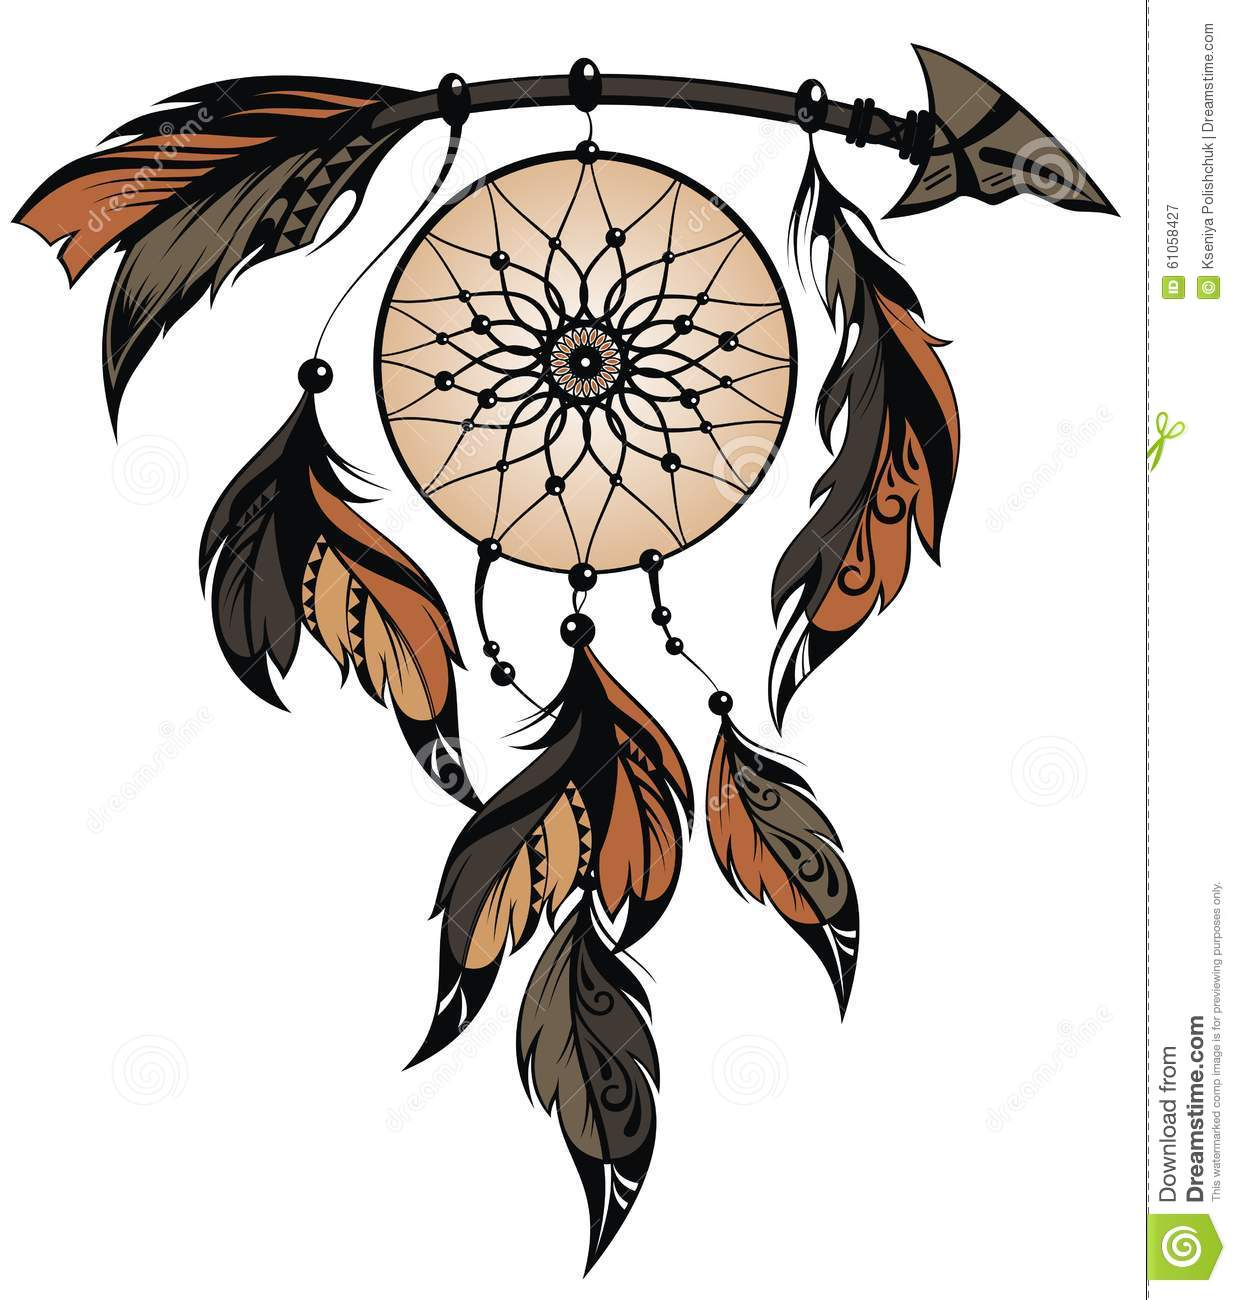 Dream catcher stock vector image 61058427 for Dream catcher graphic